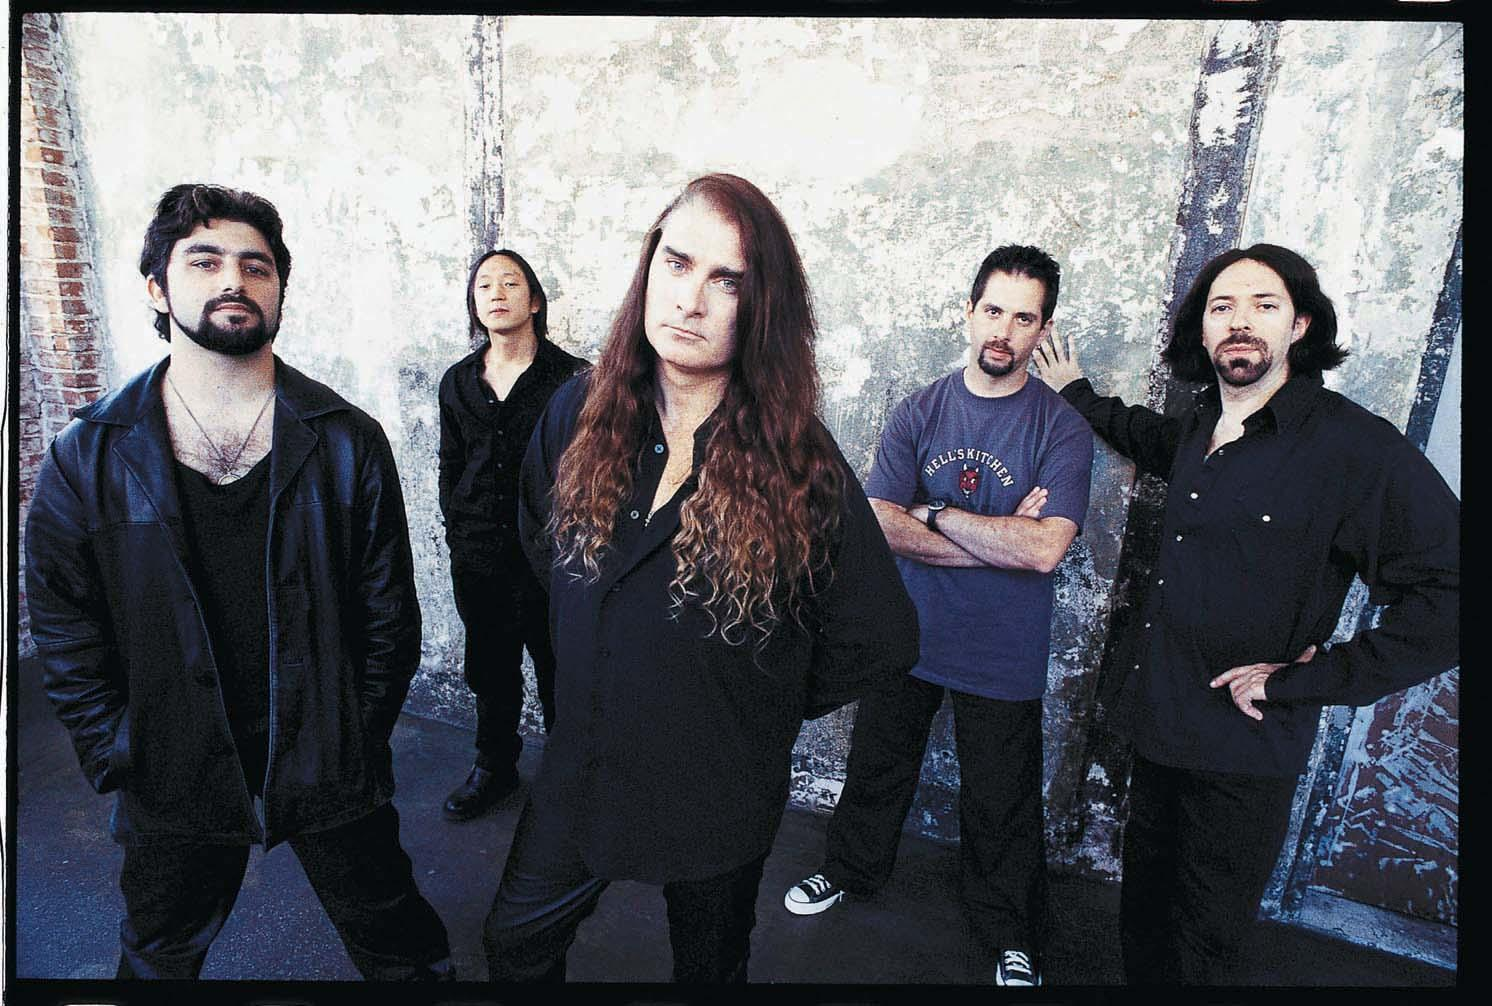 starship opeth and more coming to rock band music store gamingshogun. Black Bedroom Furniture Sets. Home Design Ideas